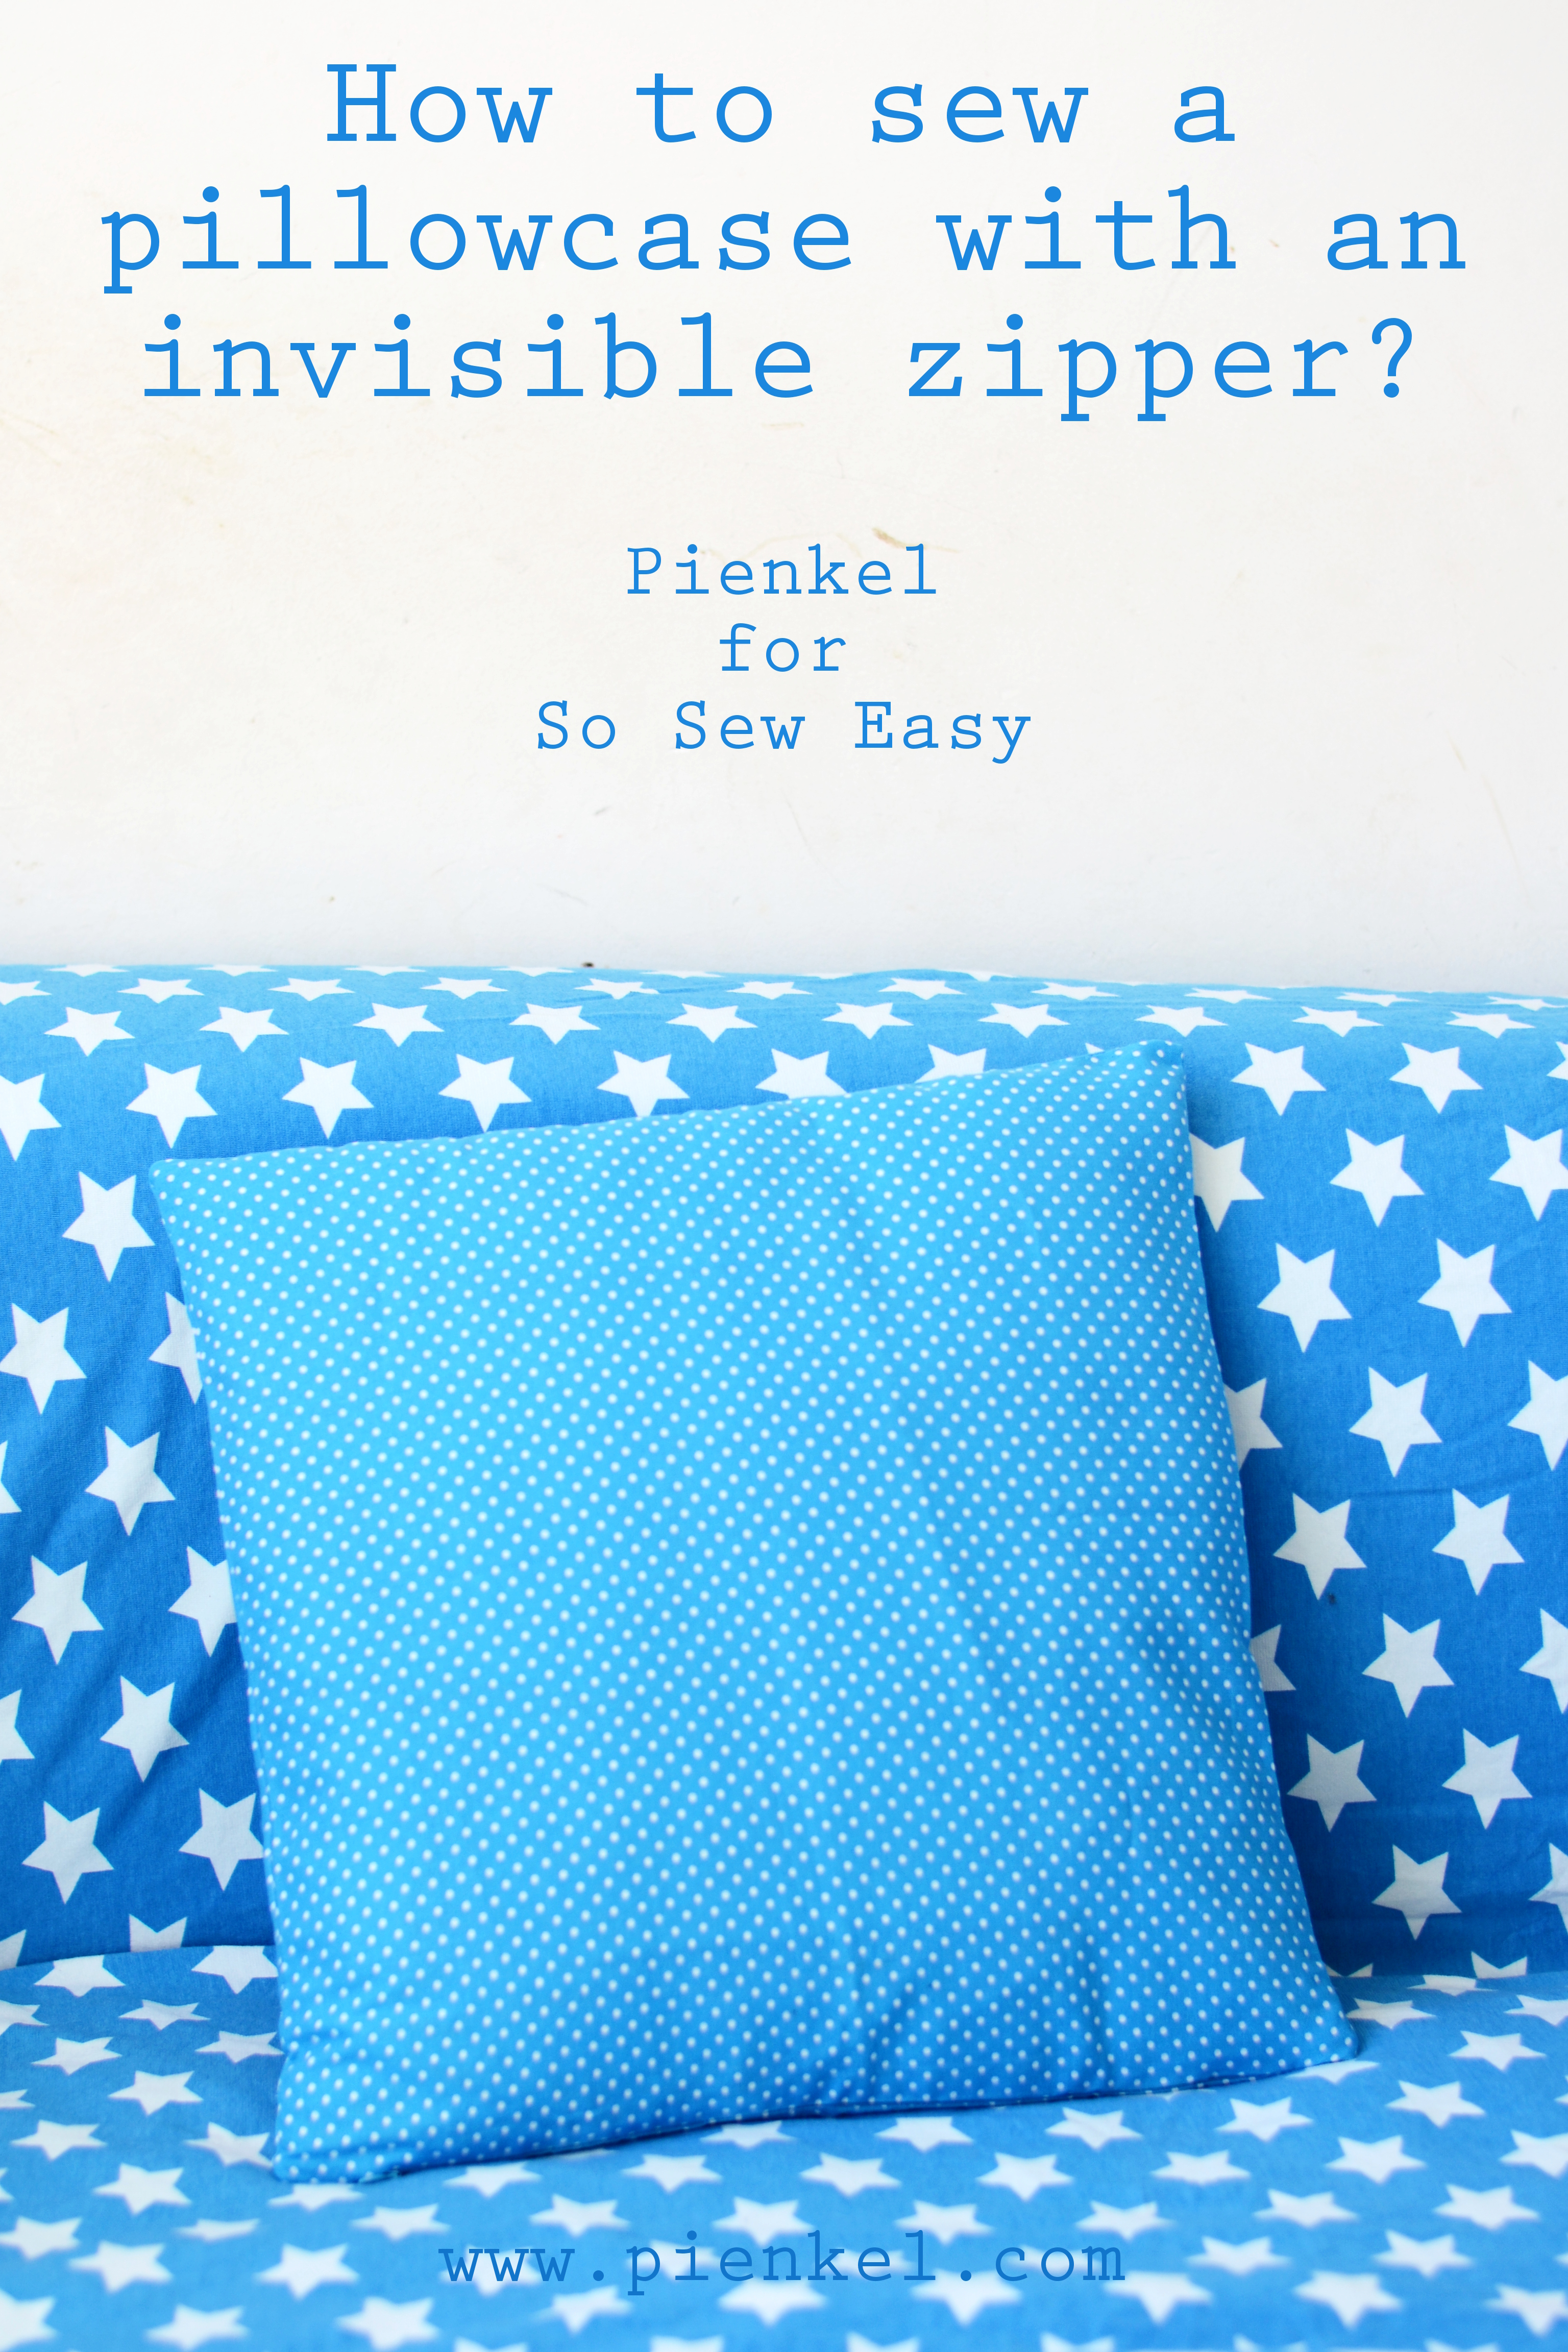 Pienkel Invisible Zipper Pillowcase Tutorial